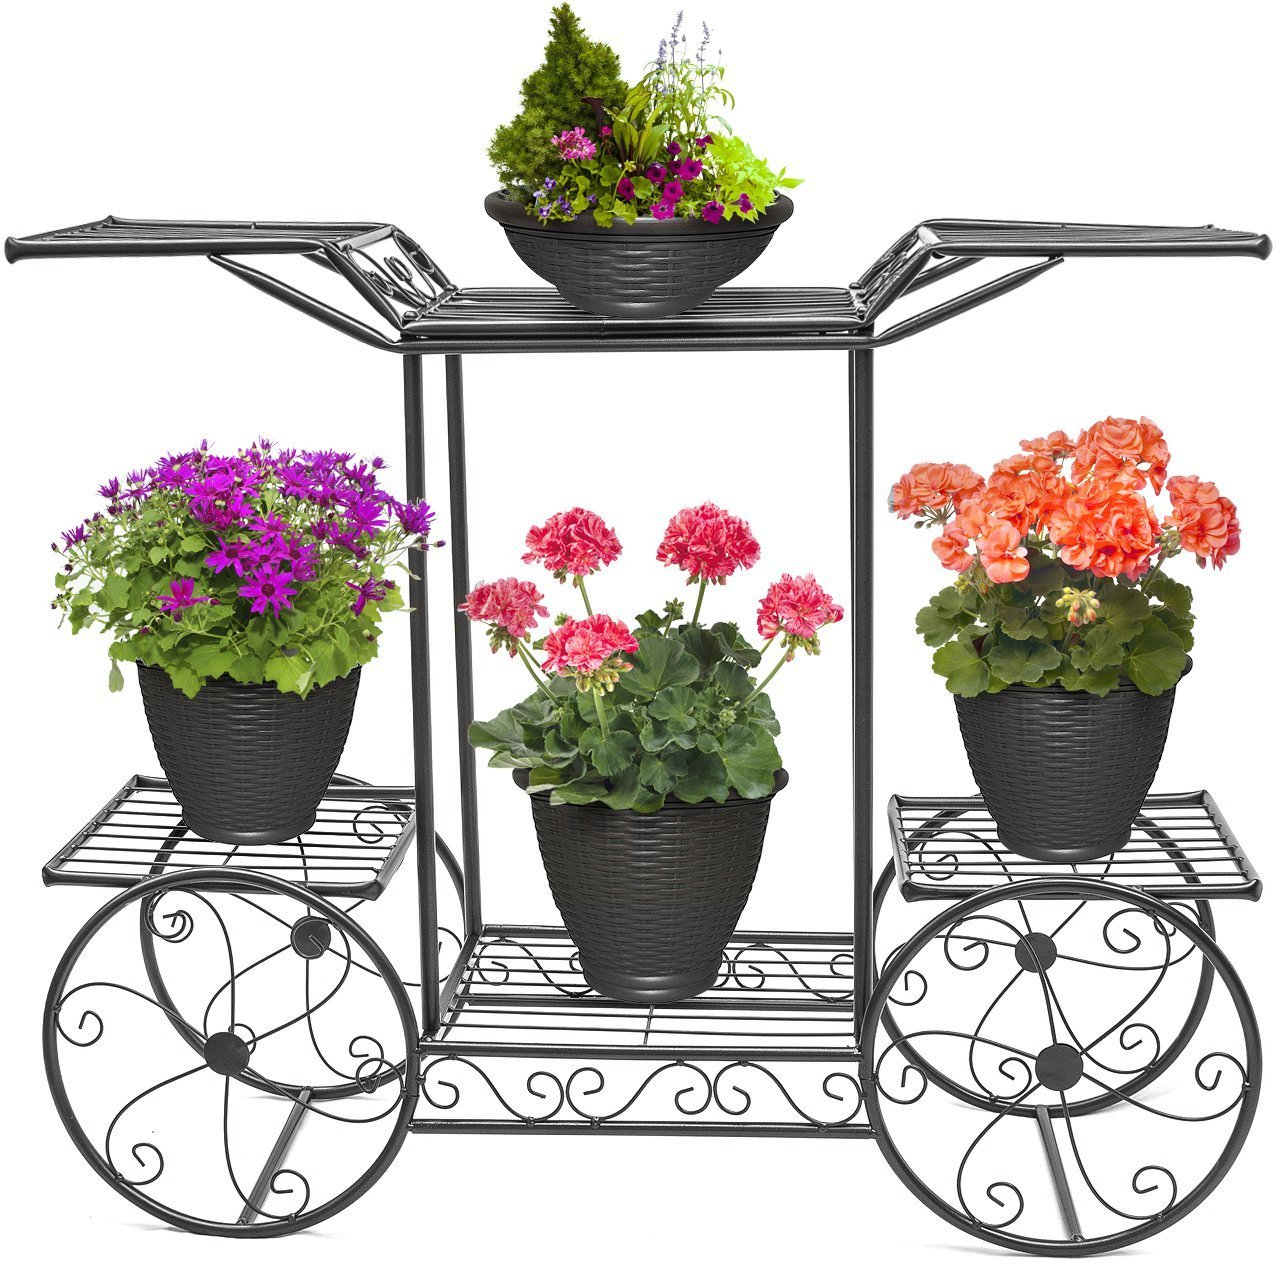 Sorbus Garden Cart Stand & Flower Pot Plant Holder Display Rack, 6 Tiers, Parisian Style - Perfect for Home, Garden, Patio (Black) by Sorbus